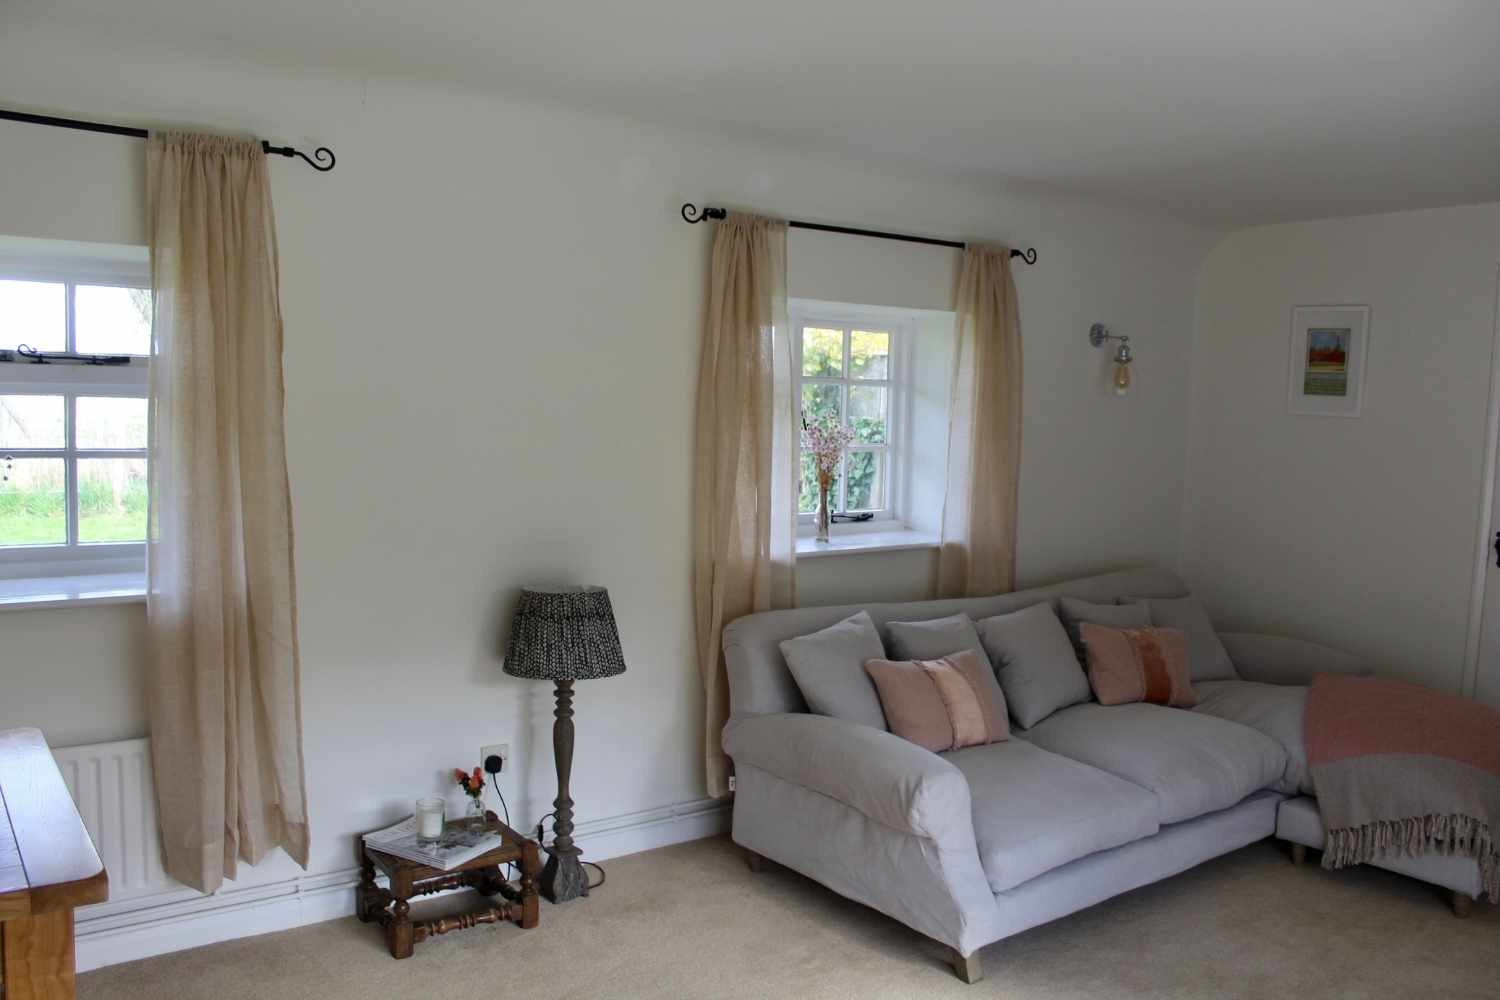 Sitting Room - a comfy place to relax